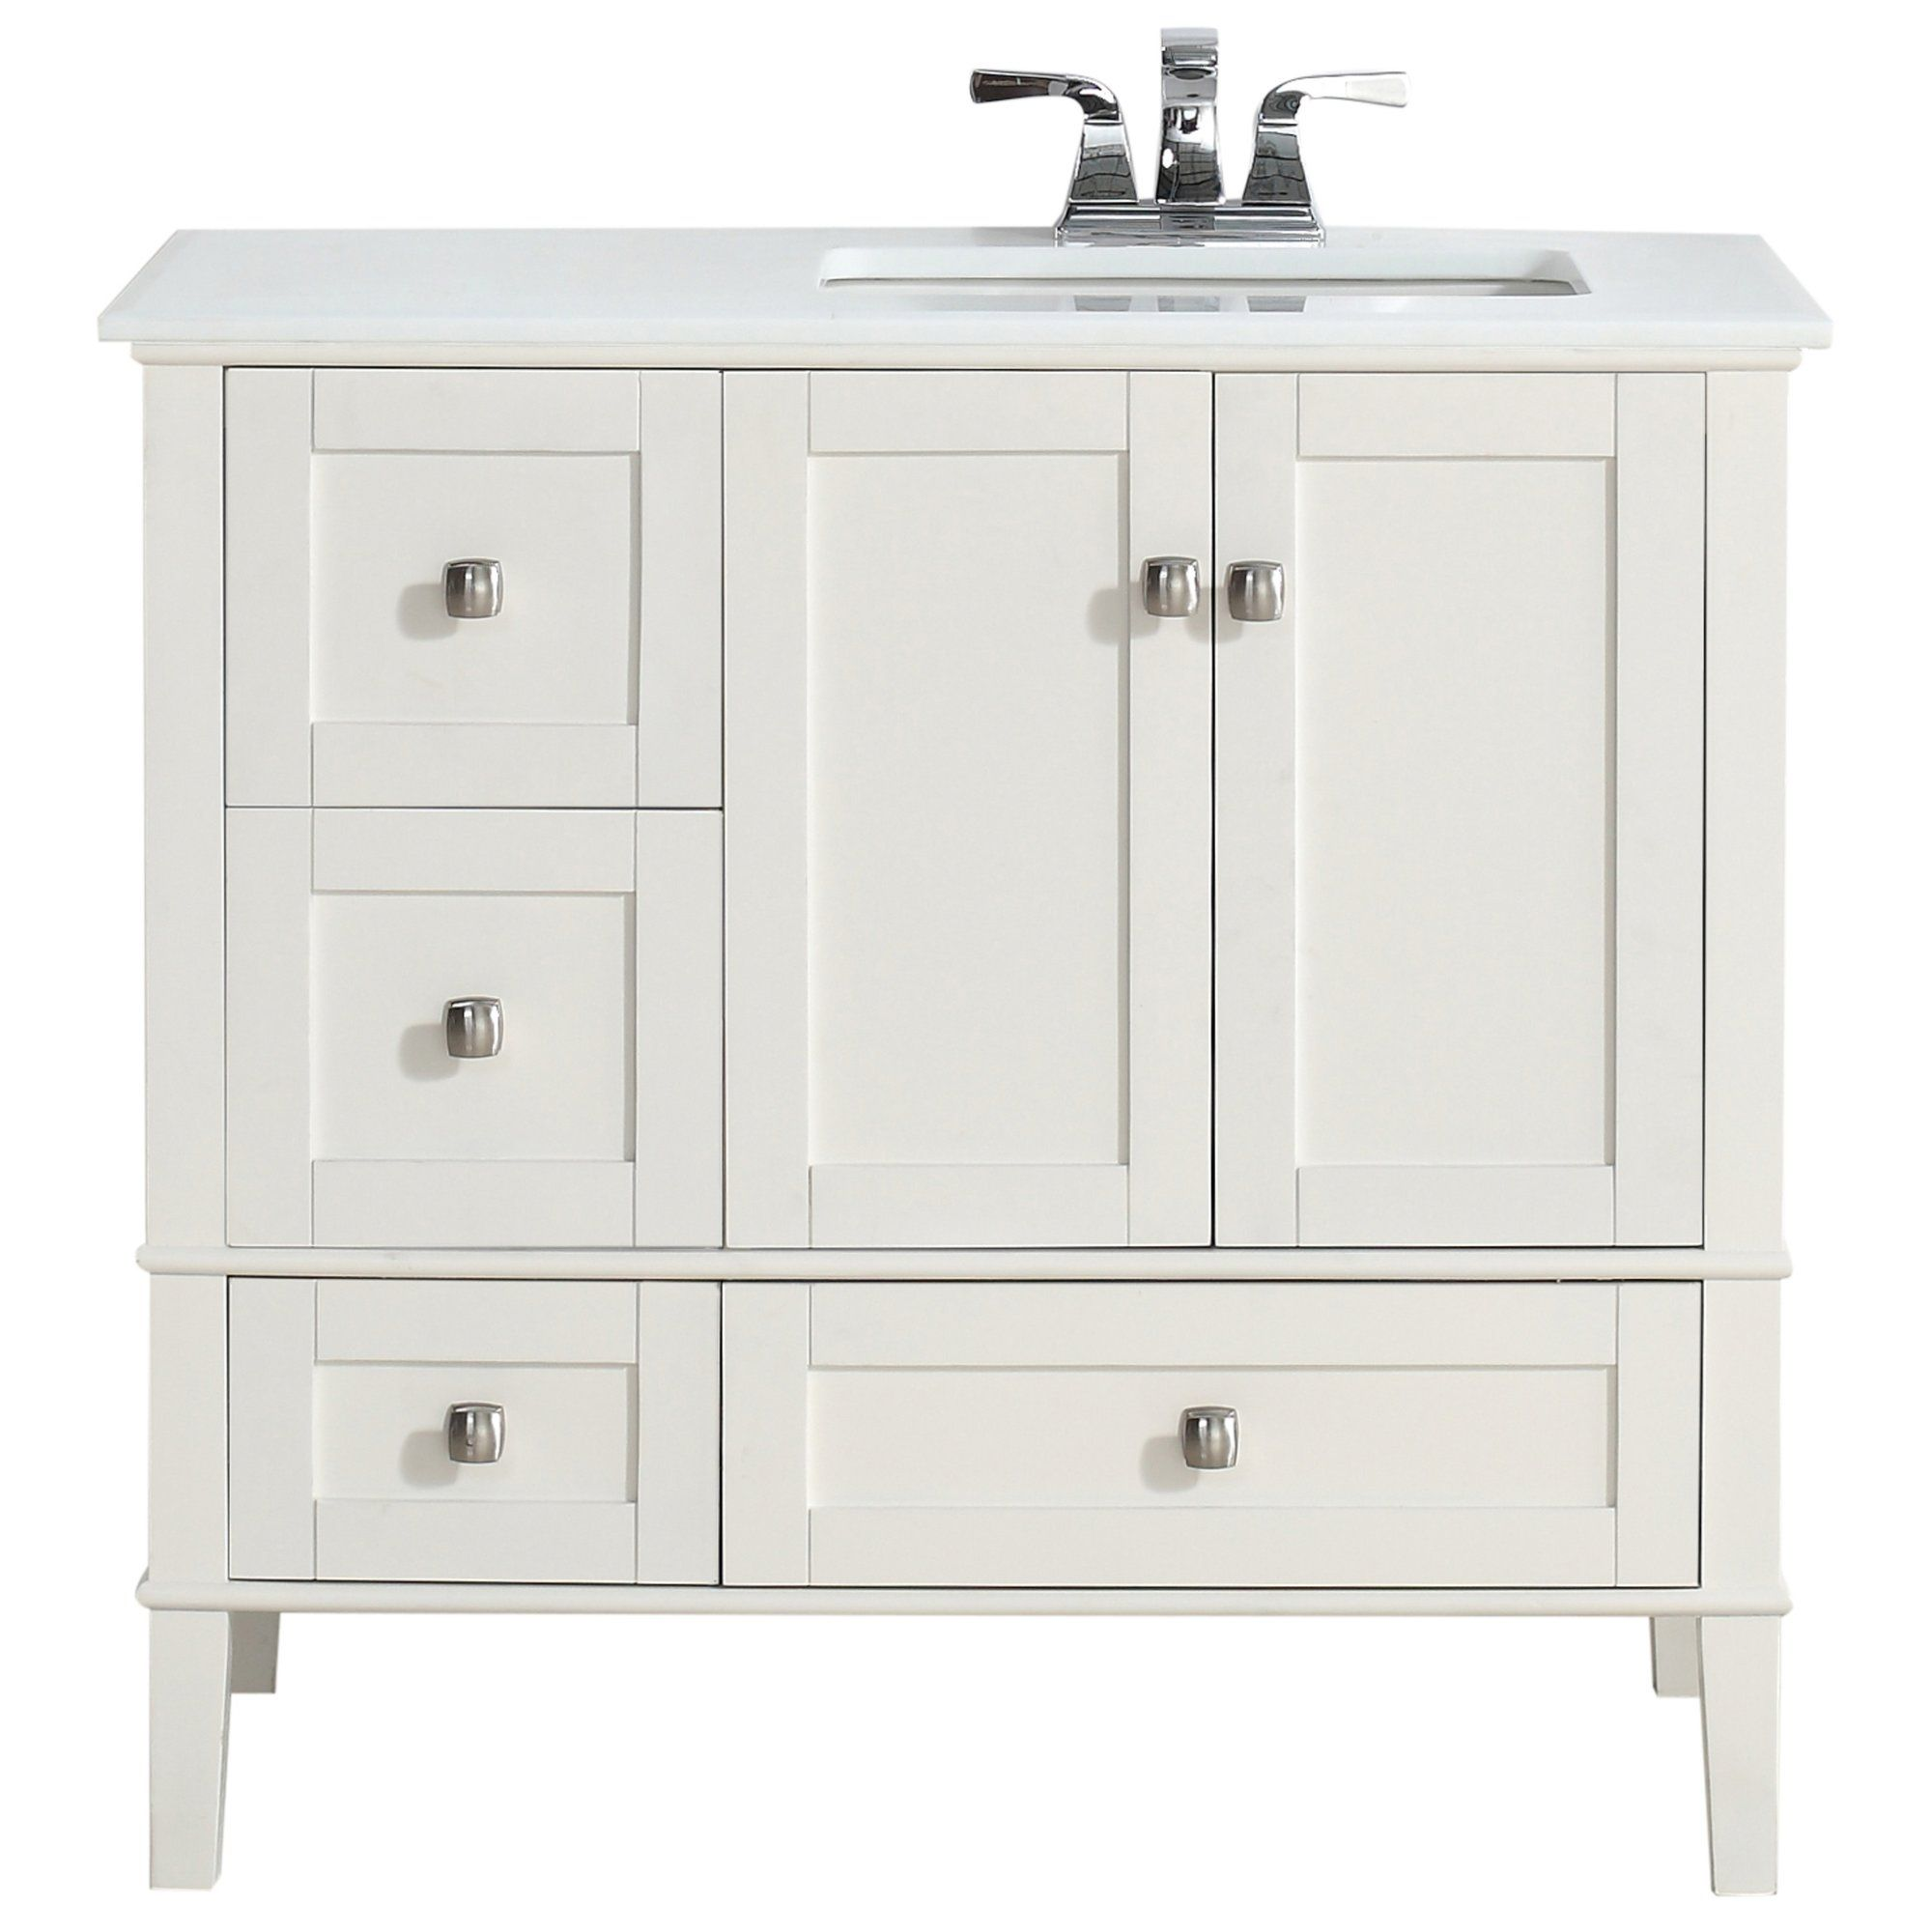 "Chelsea 37"" Single Right Offset Bath Vanity Set"